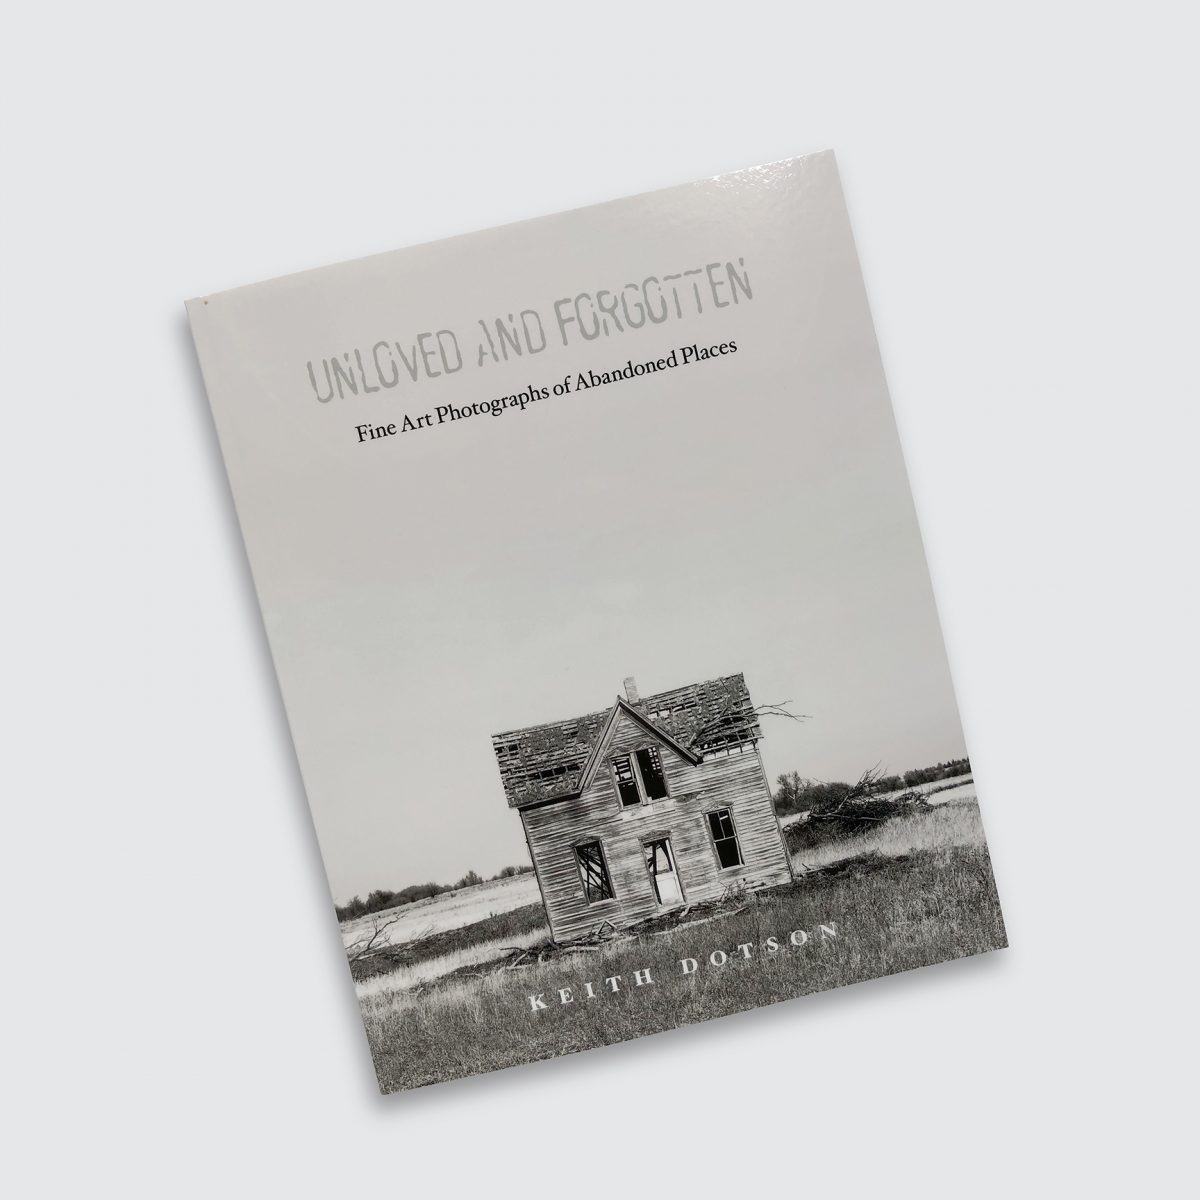 """Cover of photographer Keith Dotson's book """"Unloved and Forgotten: Fine Art Photographs of Abandoned Places"""""""